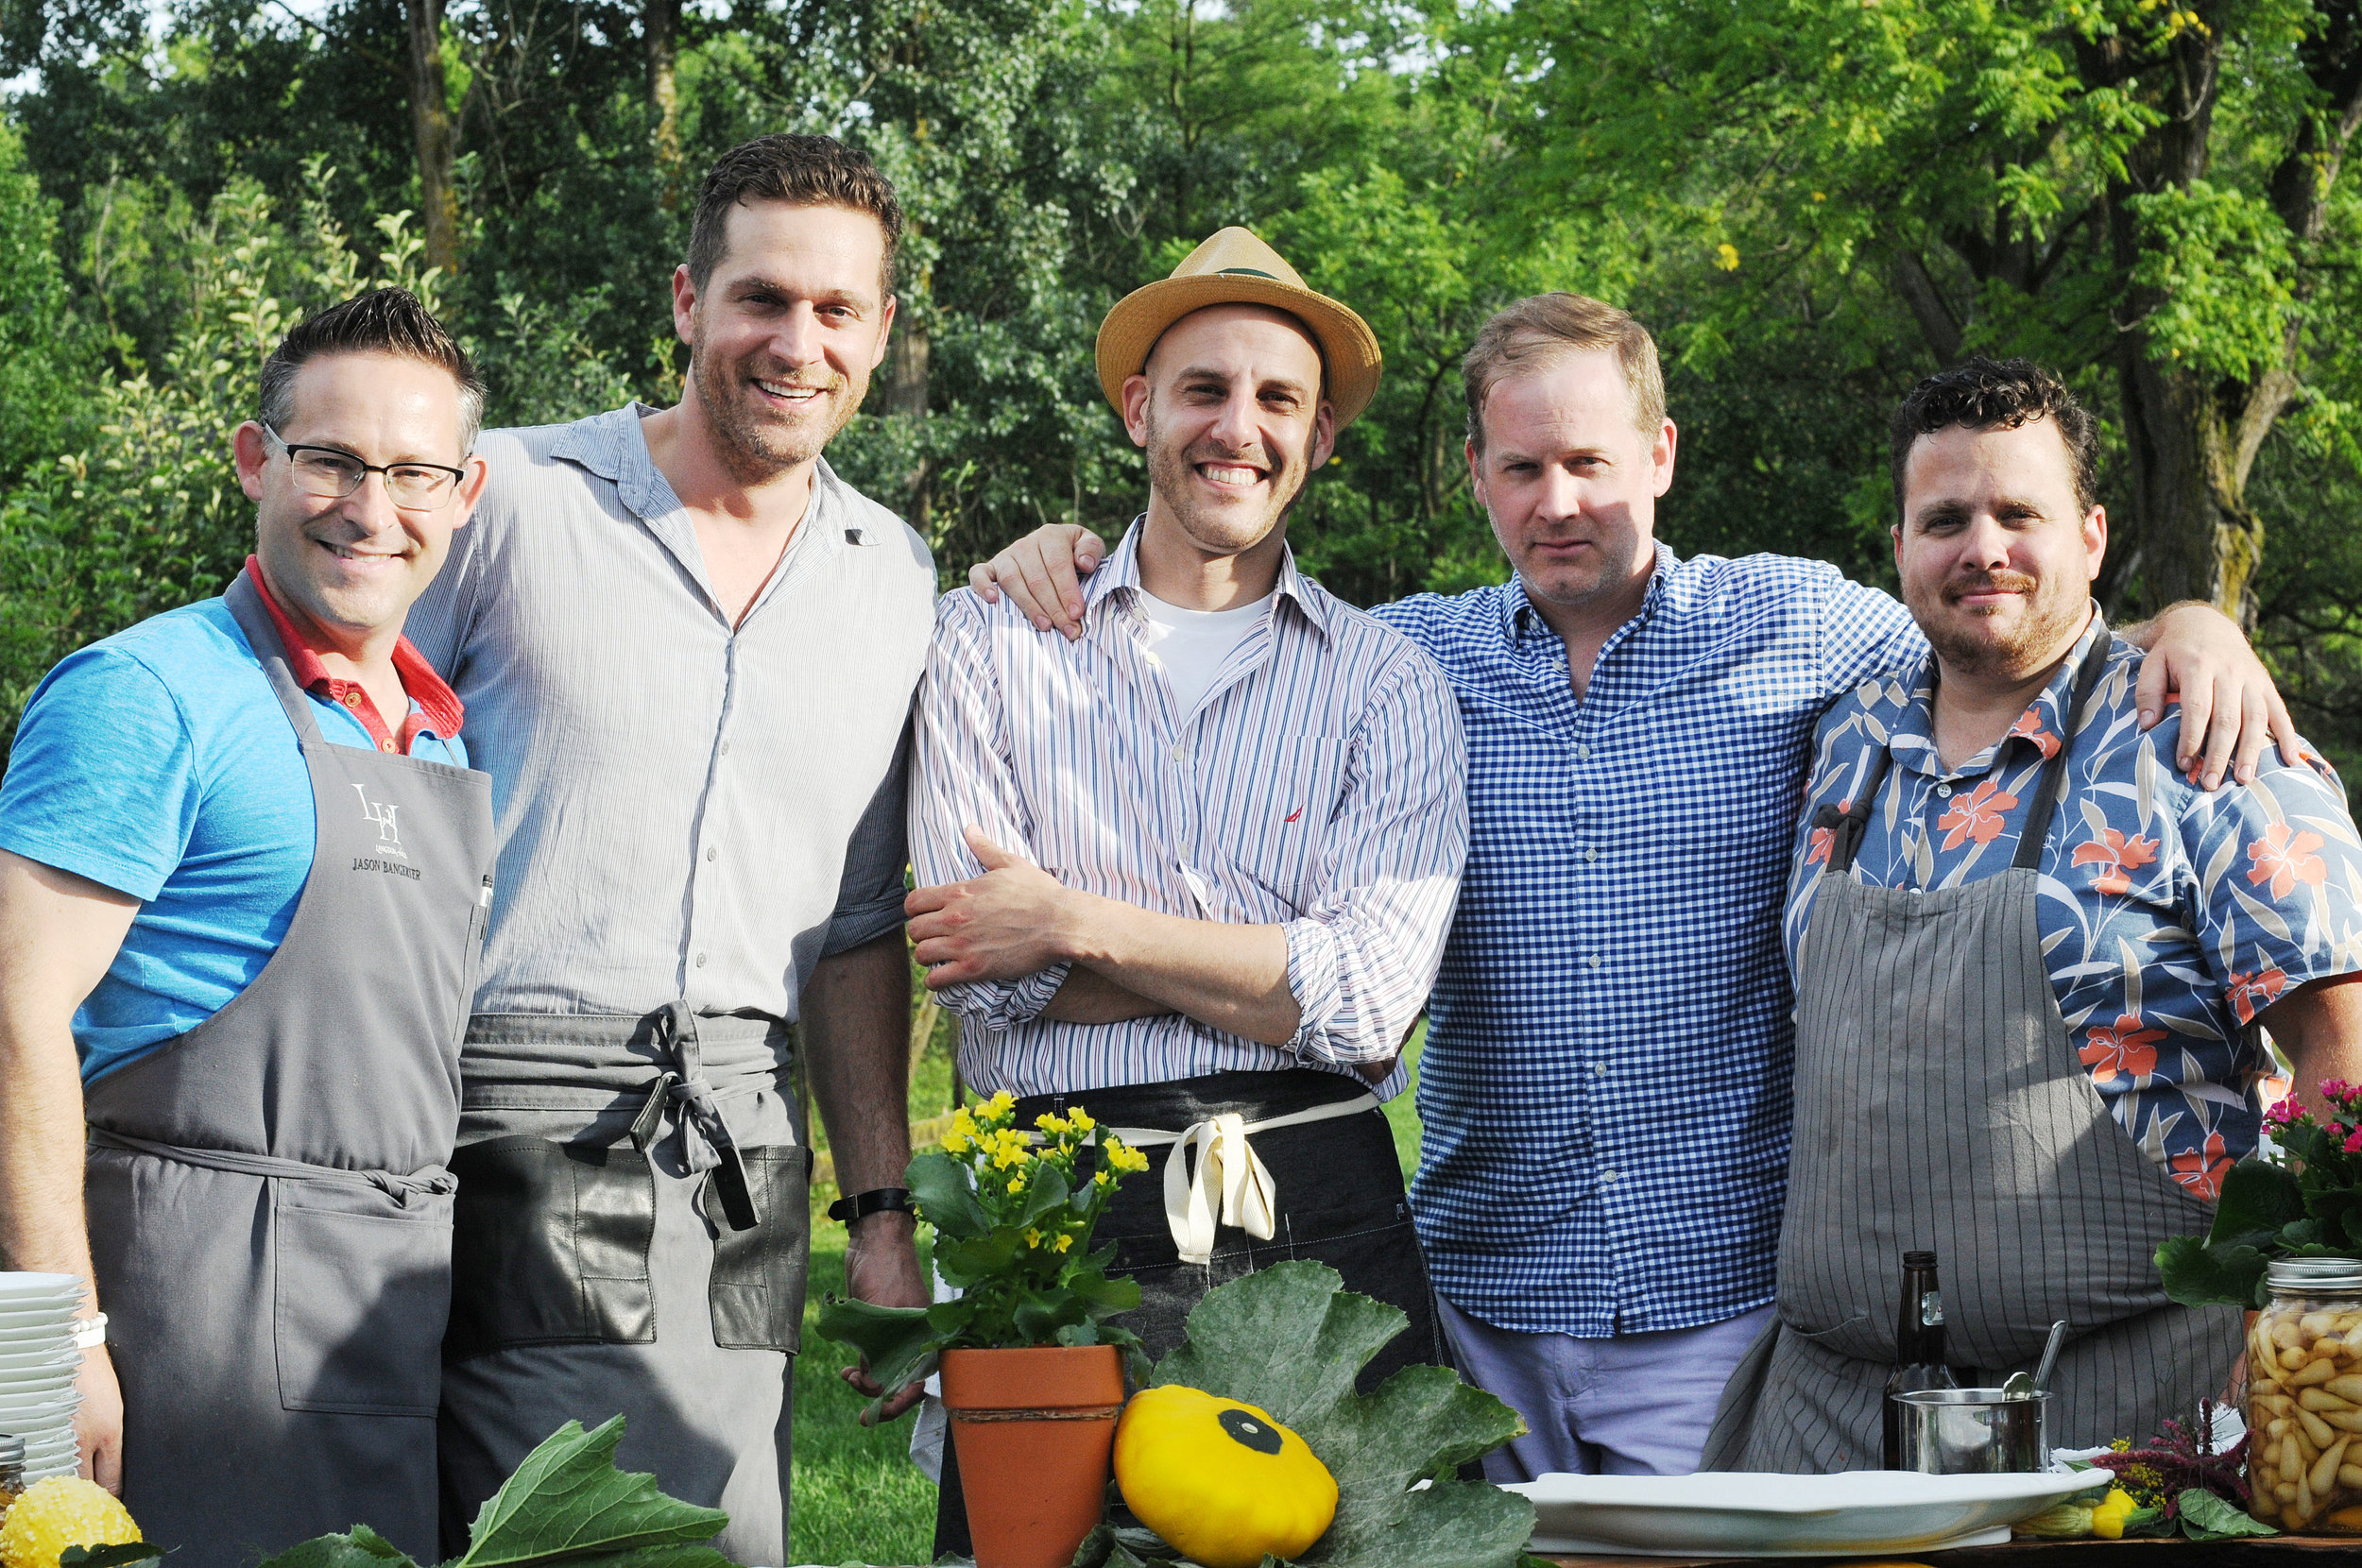 The League of Extraordinary Chefs 2017 Summer BBQ Edition. Jason Bangerter, Cory Vitiello, Afrim Pristine, Jonathan Goodyear & Victor Barry. Photo by Alex Eidelman.